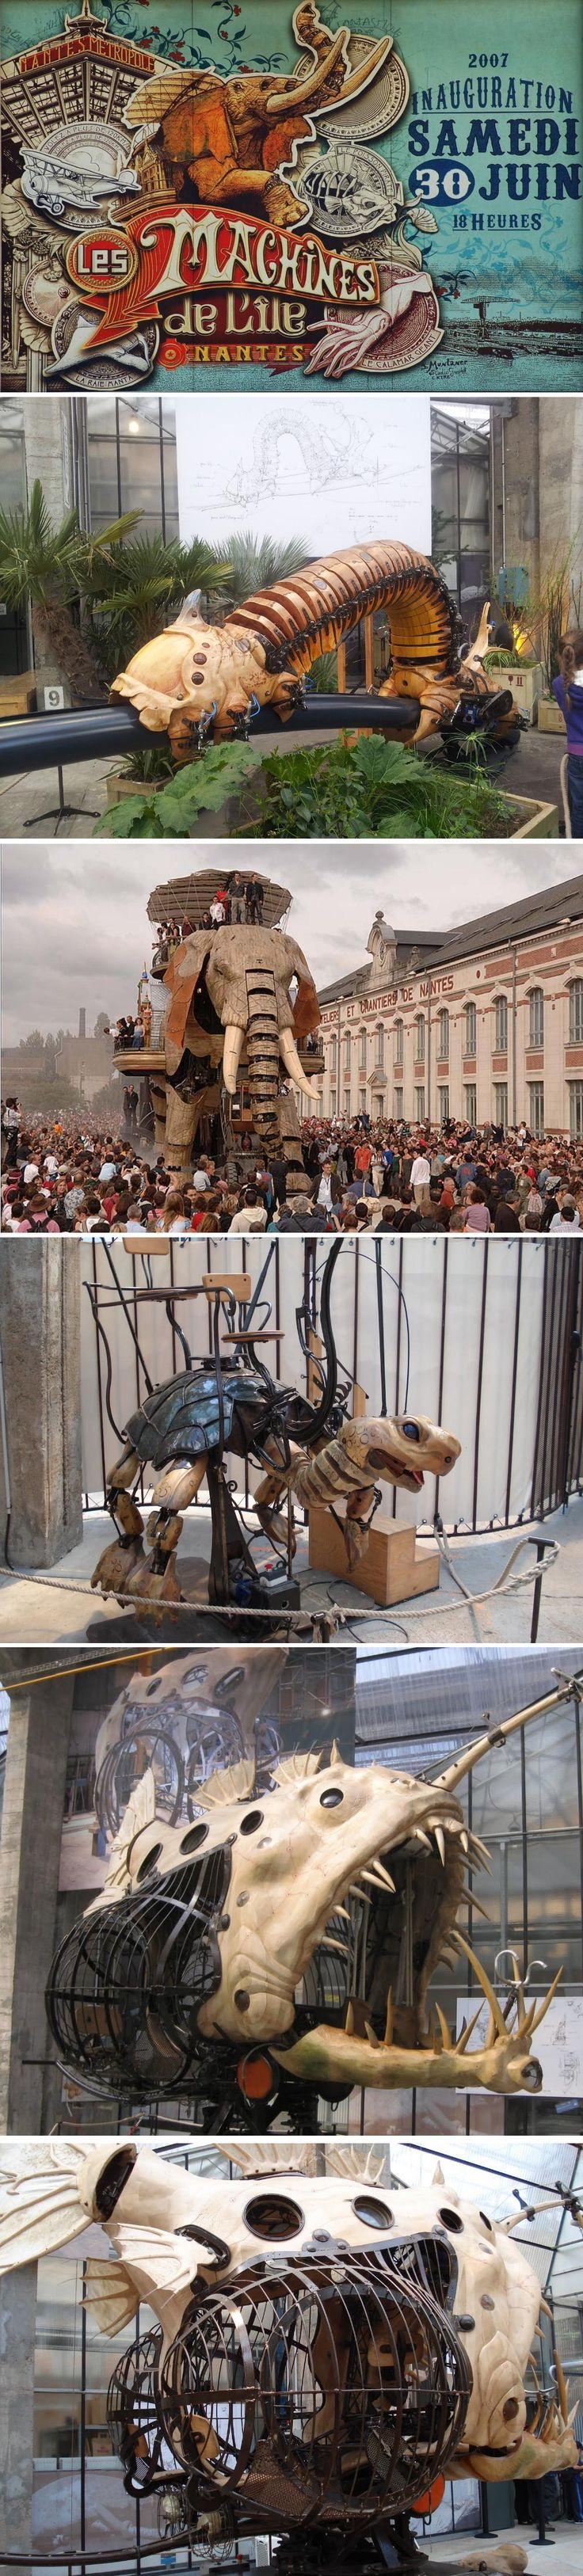 The Machines de l'Ile is an amazing French artistic project. It is a blend of the invented worlds of Jules Verne, the mechanical universe of Leonardo da Vinci, and the industrial history of Nantes, on the exceptional site of the former shipyards. www.lesmachines-n...